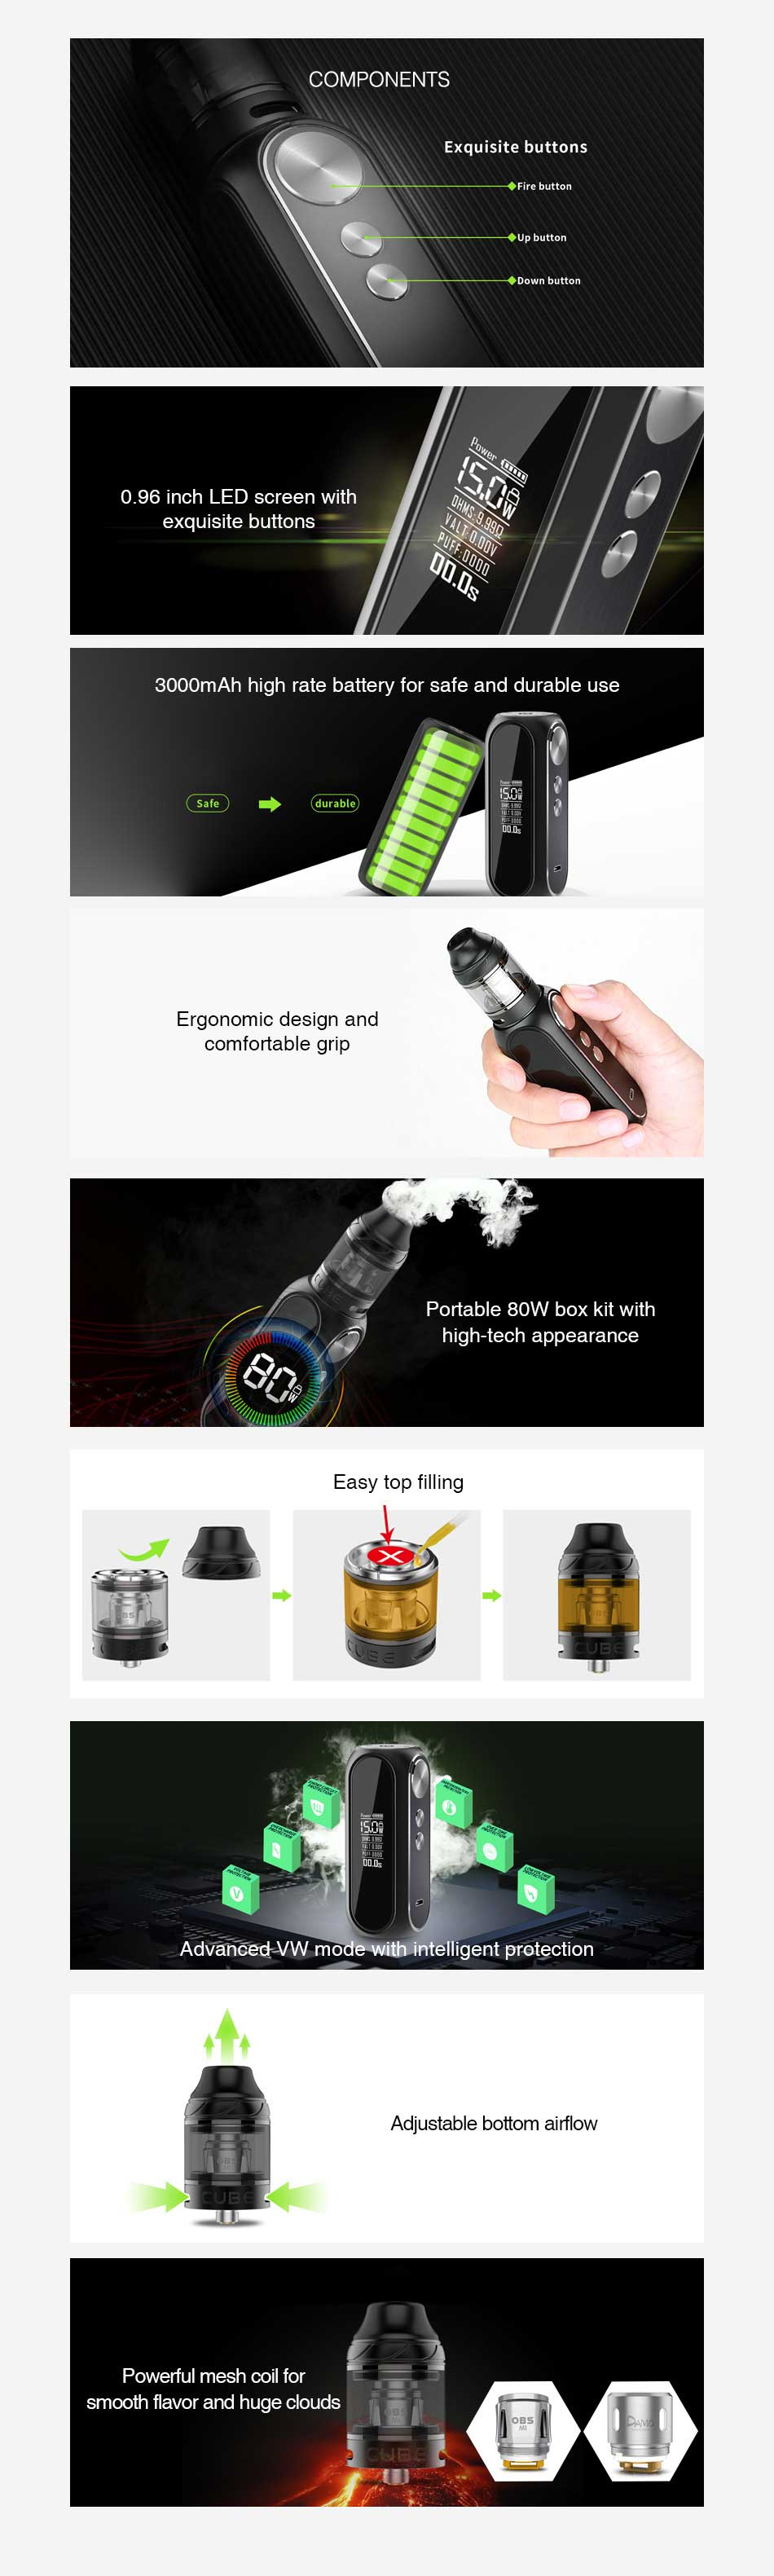 OBS-Cube-80w-Starter-Kit-With-Tank-in-Pakistan-For-Sale2